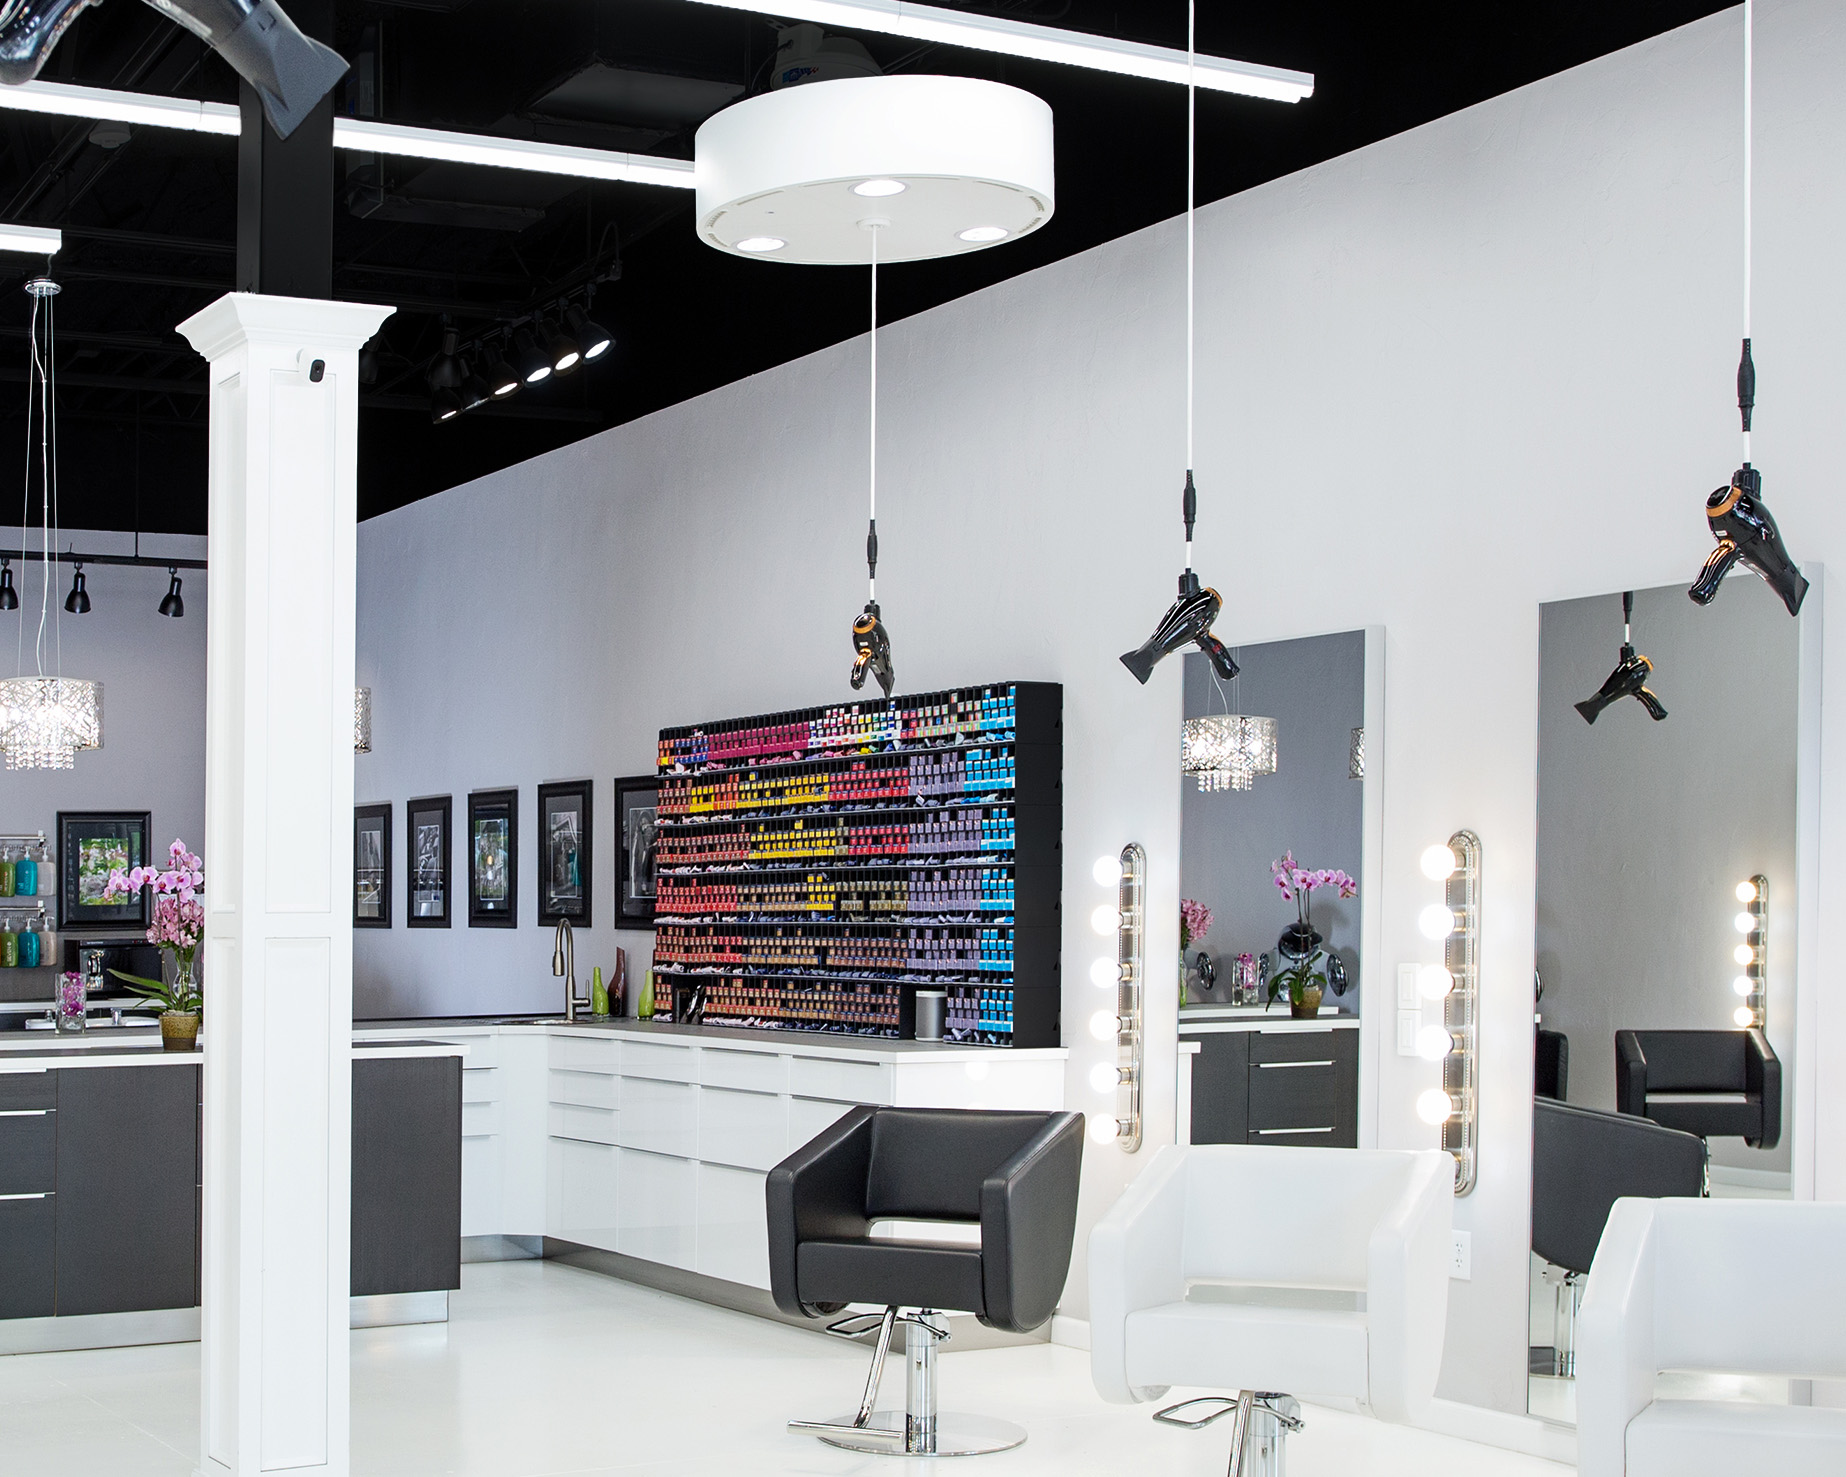 Designing Minds: Tips for Designing a Healthier Salon for Your Team and Your Guests